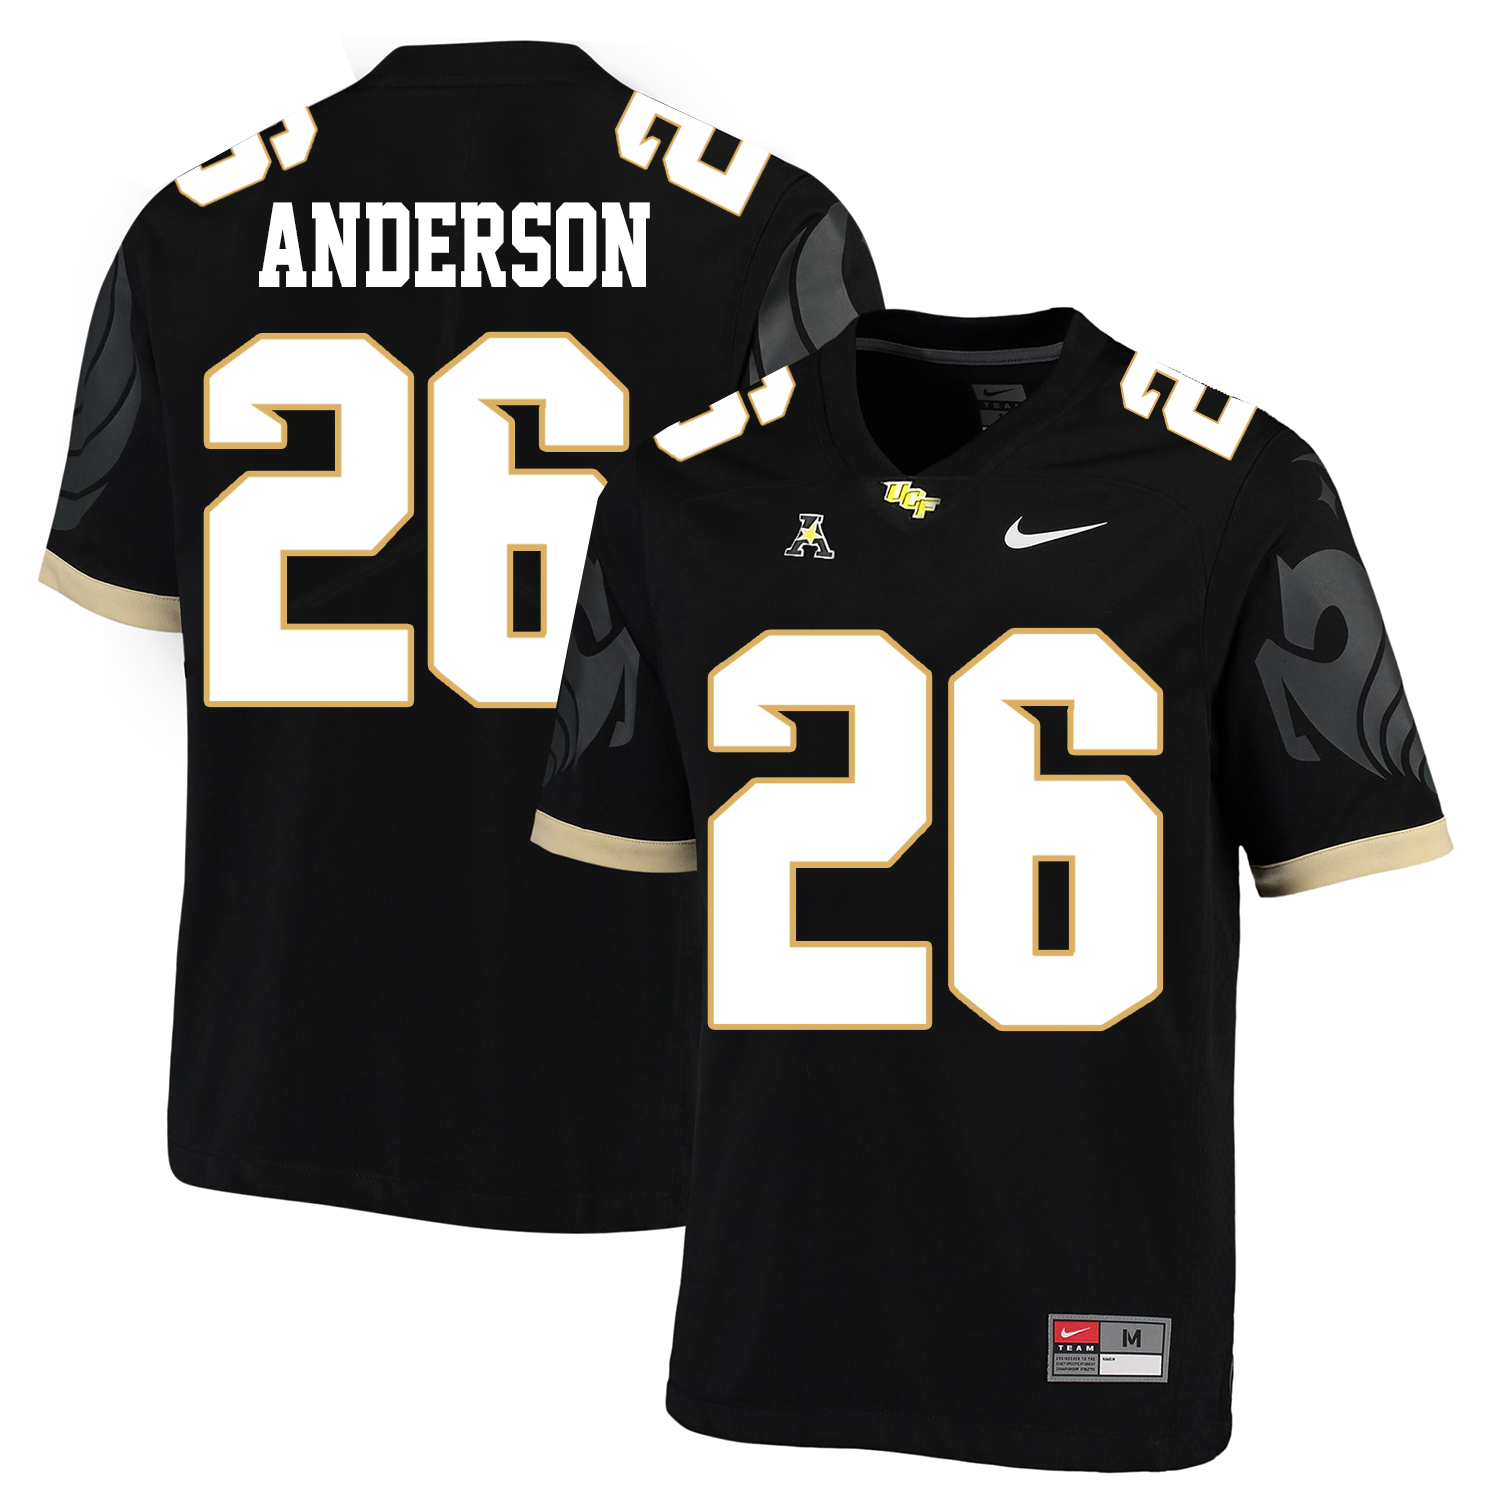 UCF Knights 26 Otis Anderson Black College Football Jersey